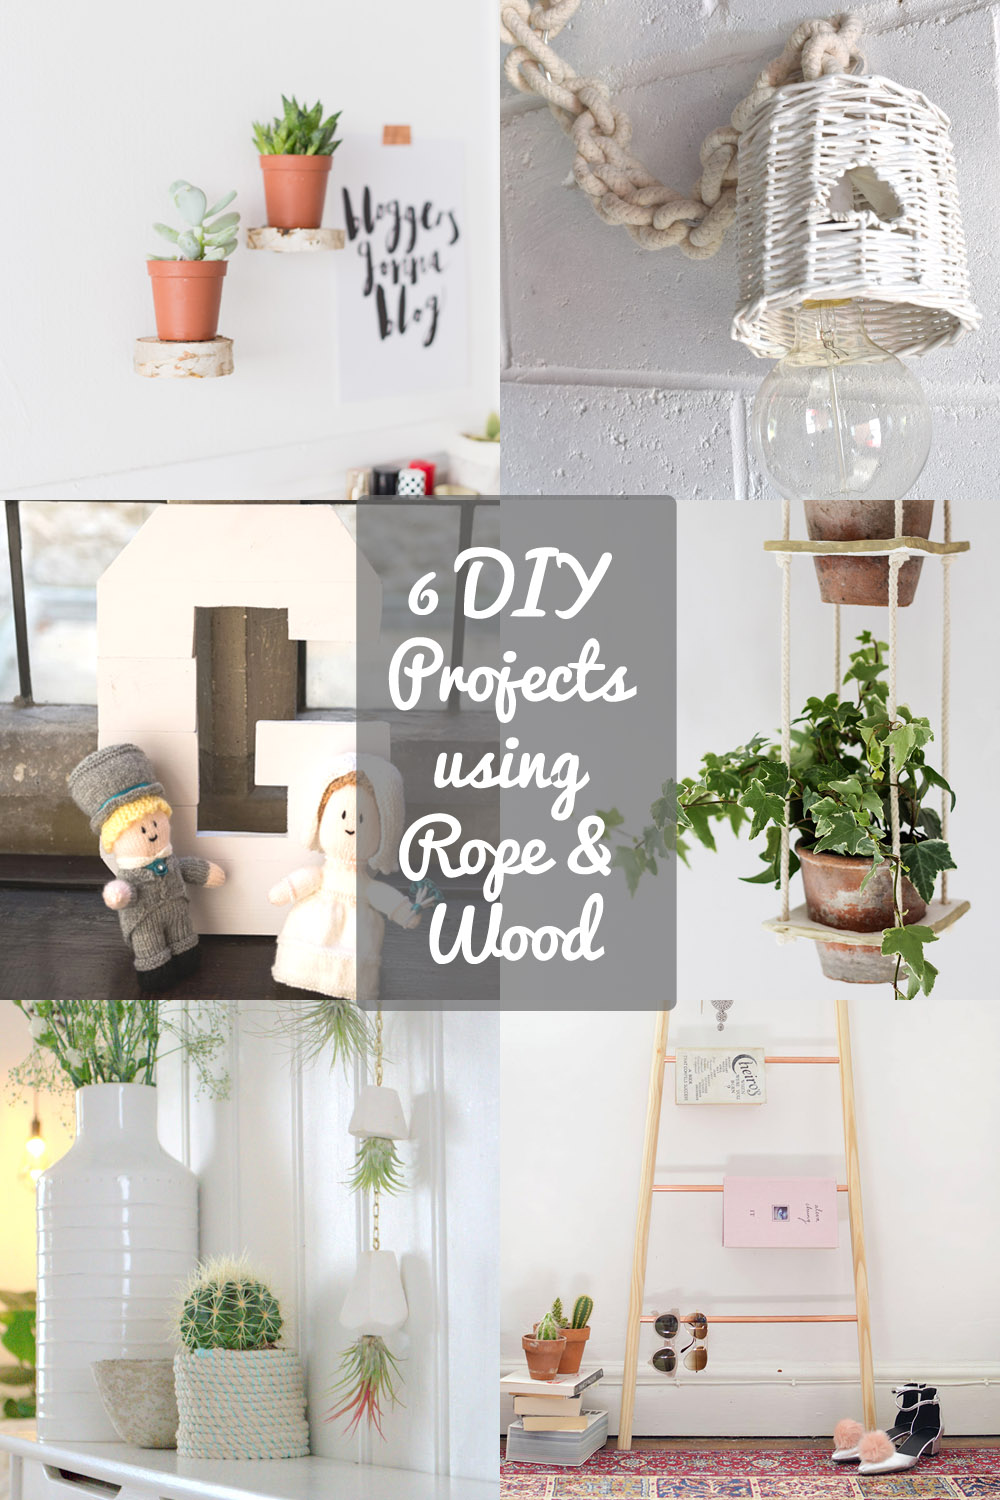 6 DIY project ideas using rope and wood